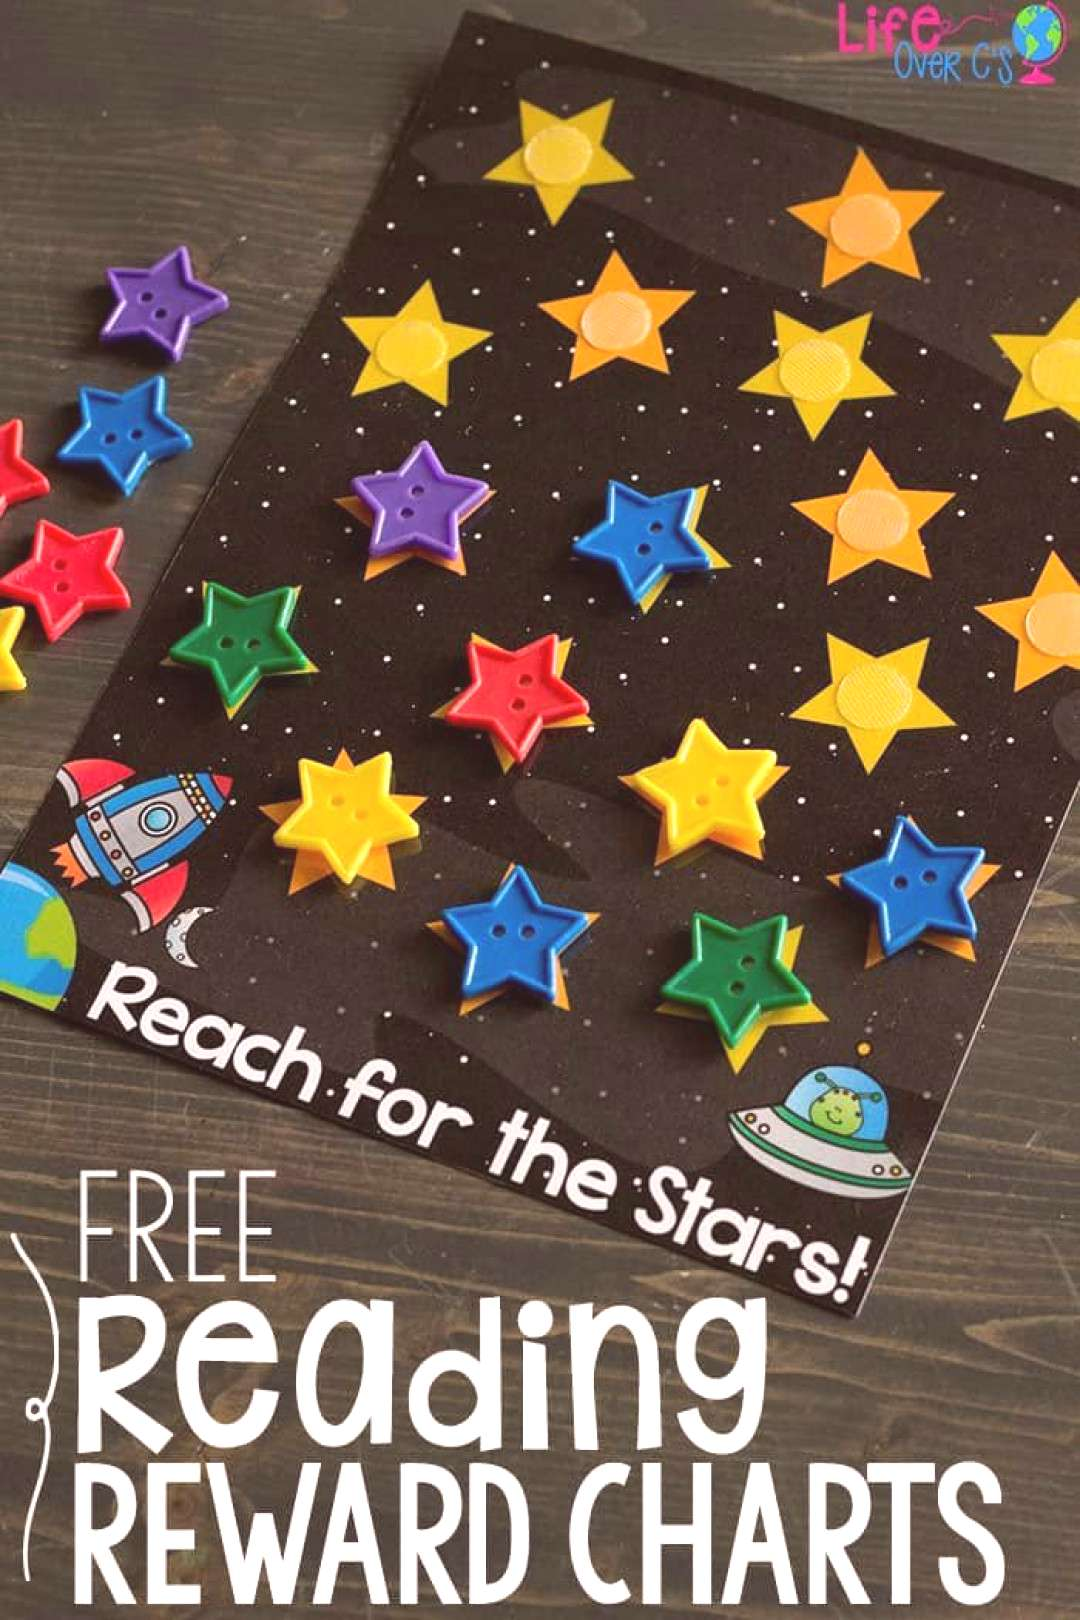 Reading Rewards Chart Child Sleep Reading rewards chart - belohnungstabelle lesen - lecture du tabl